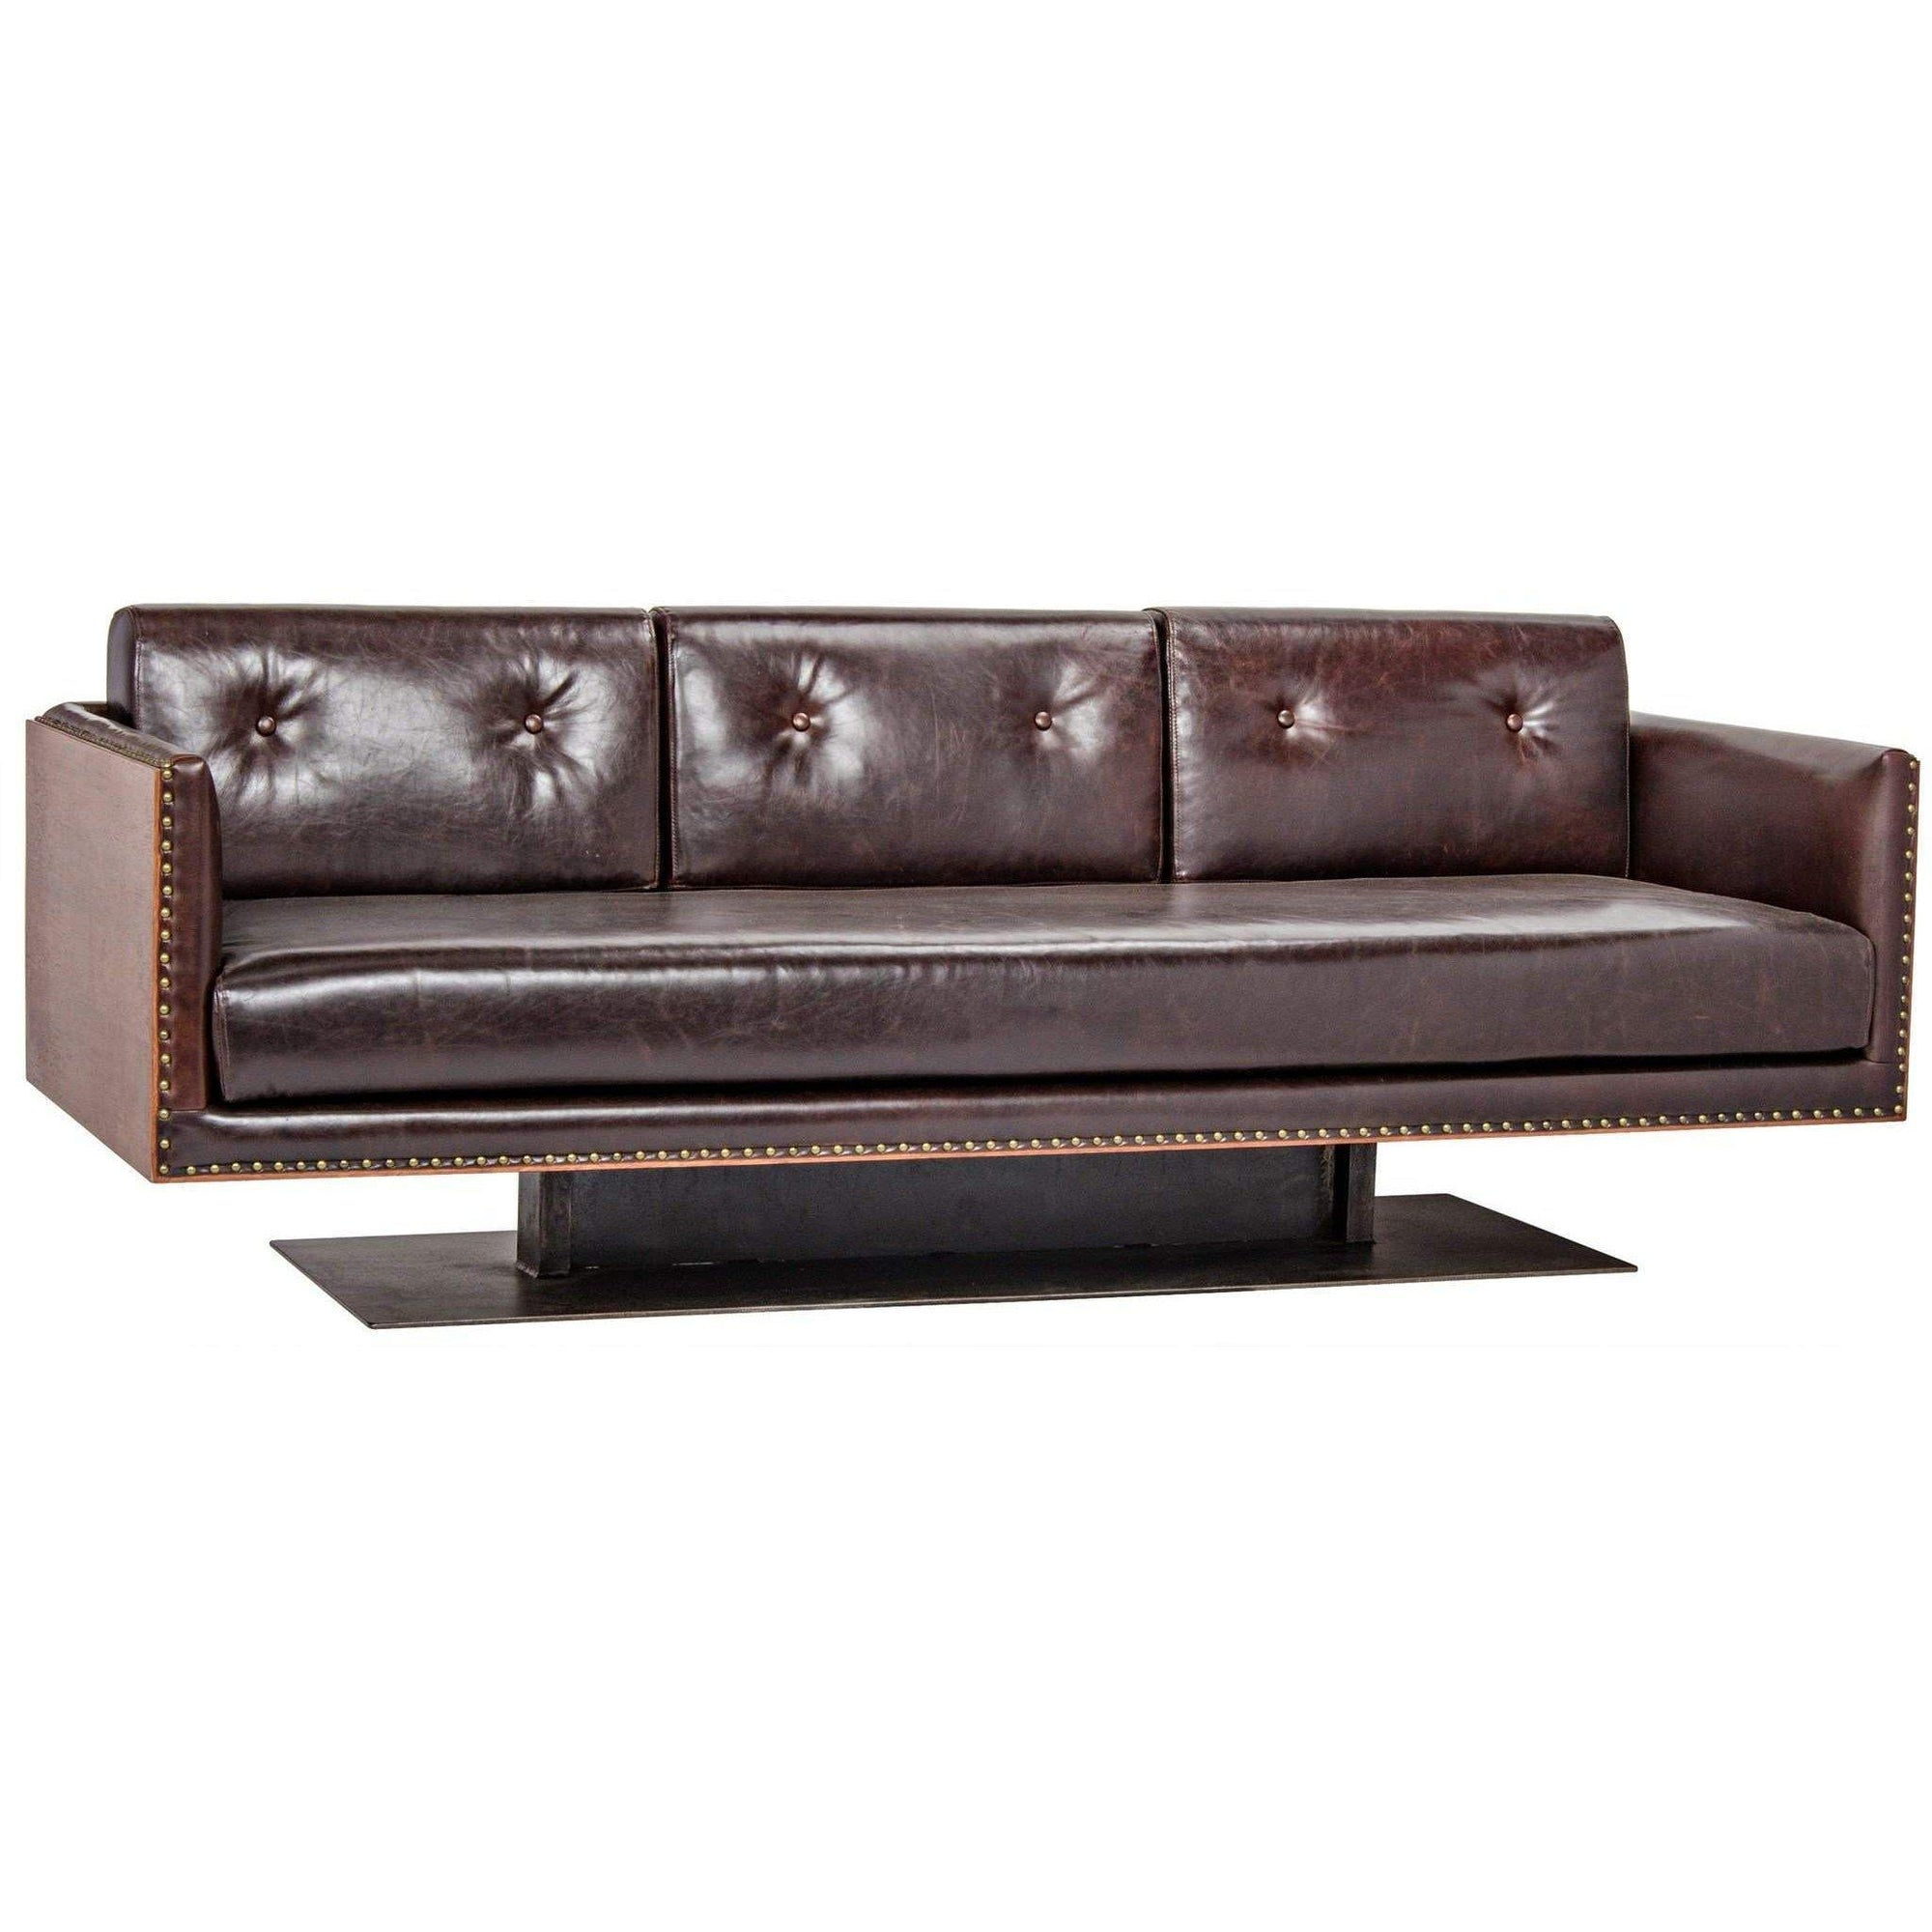 Noir Sofas in store & online at Blue Hand Home